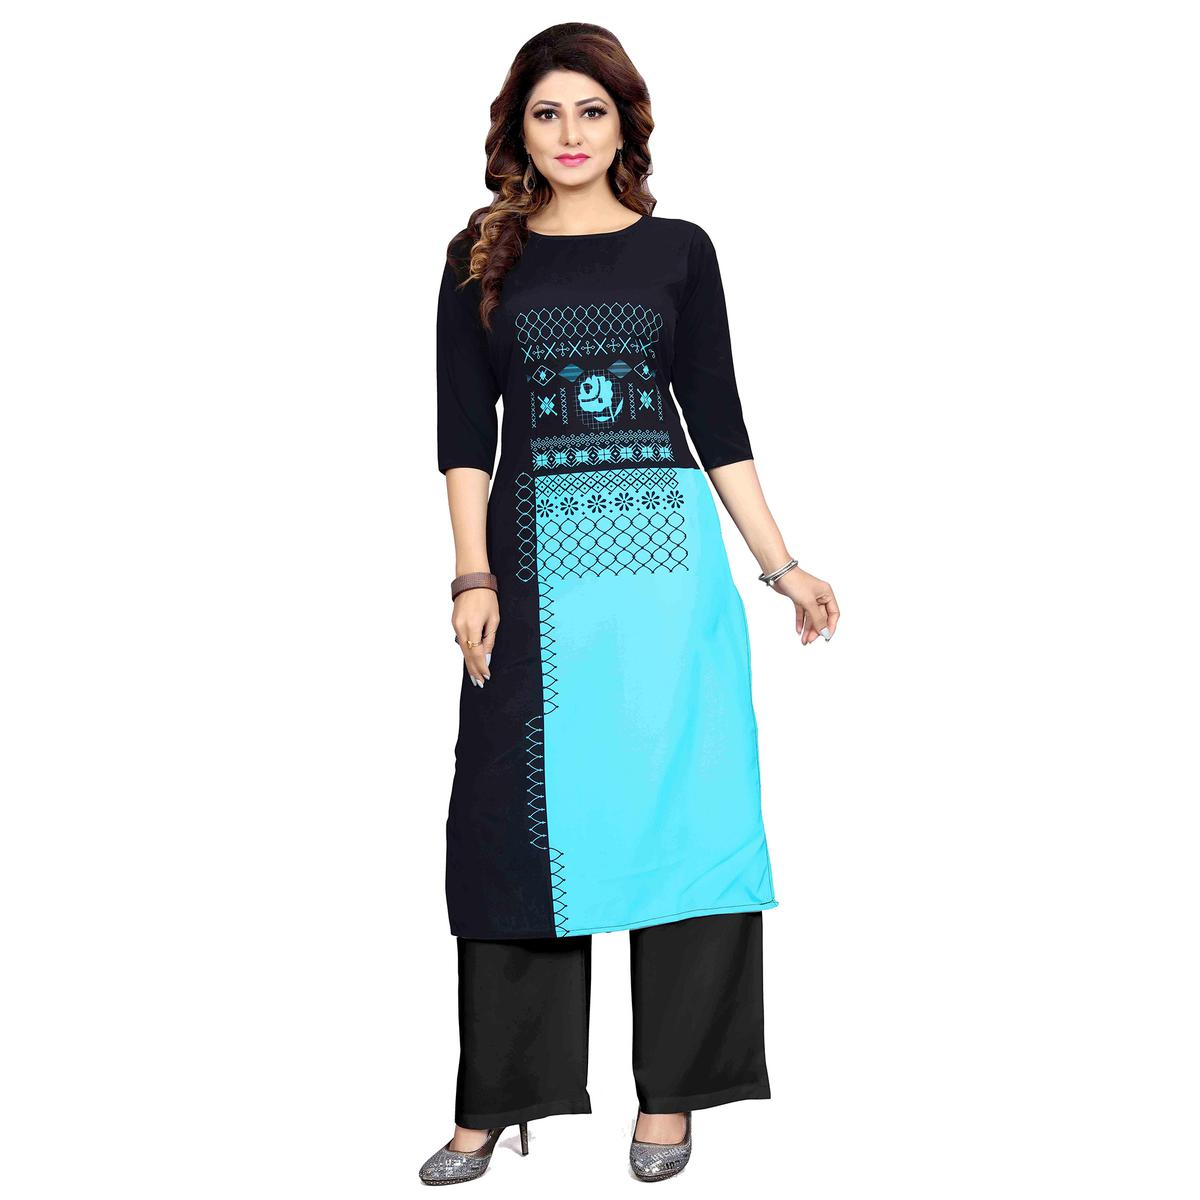 Groovy Black Colored Casual Wear Digital Printed Calf-Length Straight Crepe Kurti